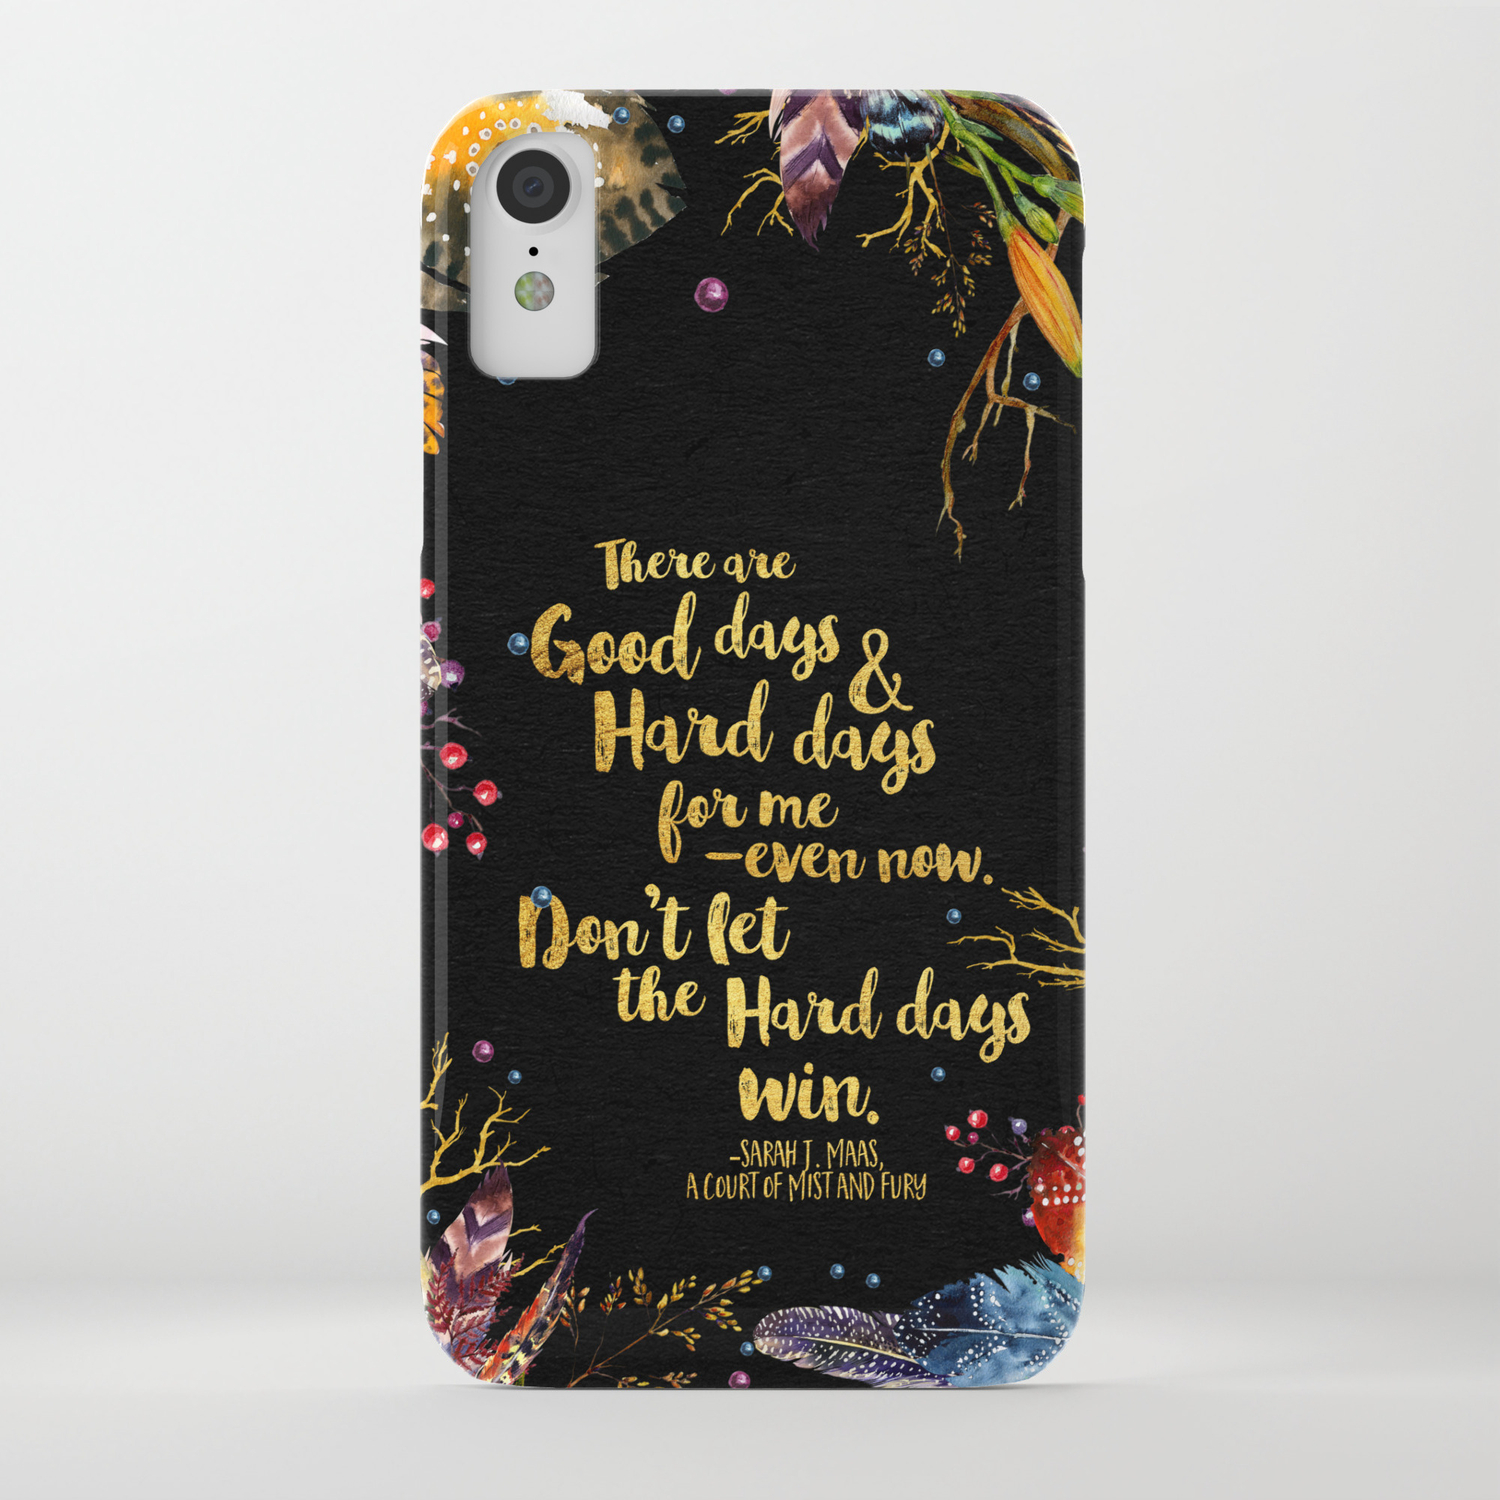 Don't Let The Hard Days Win - ACOMAF iPhone 11 case